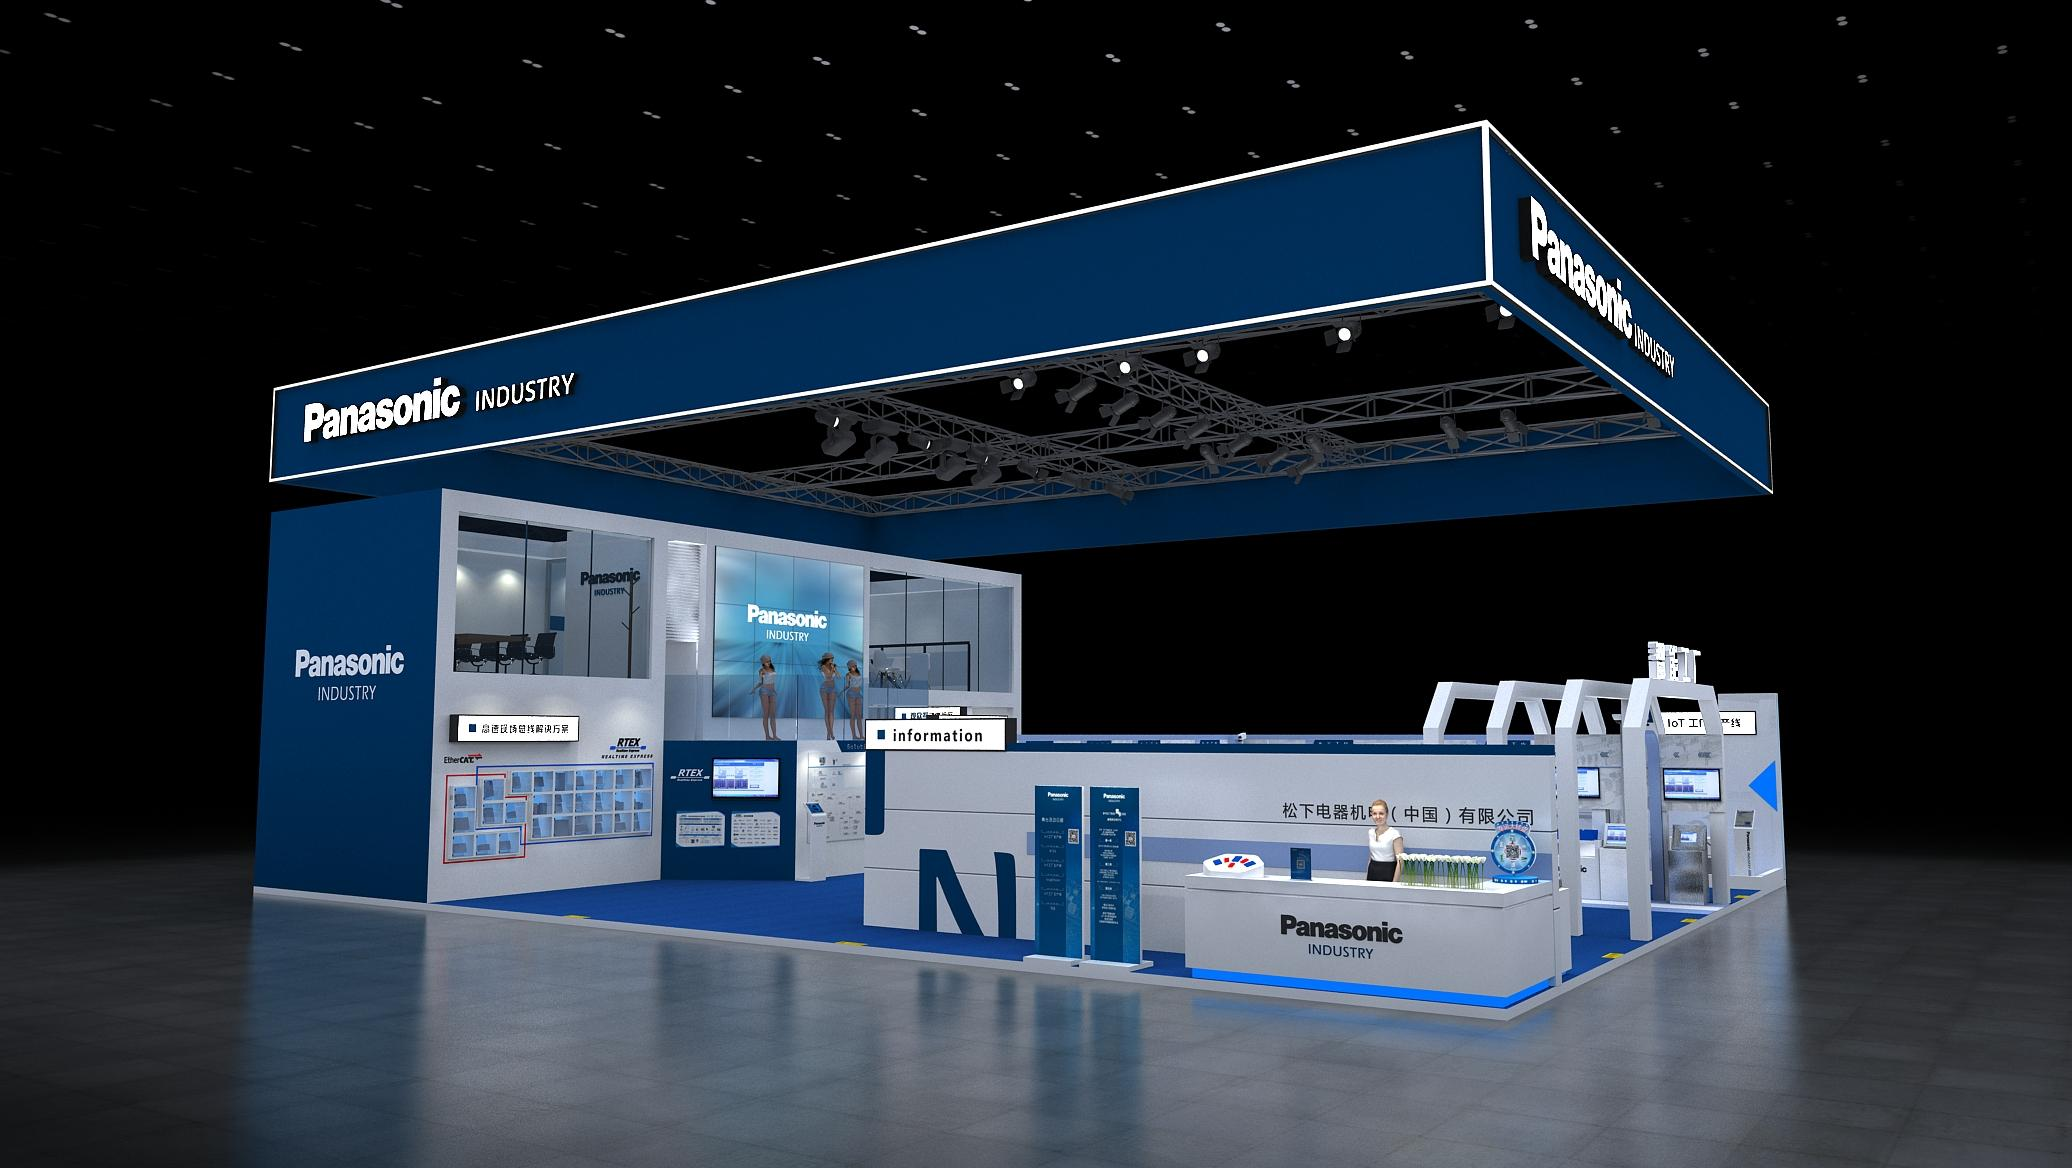 image: Panasonic Booth image at the 21st China International Industry Fair